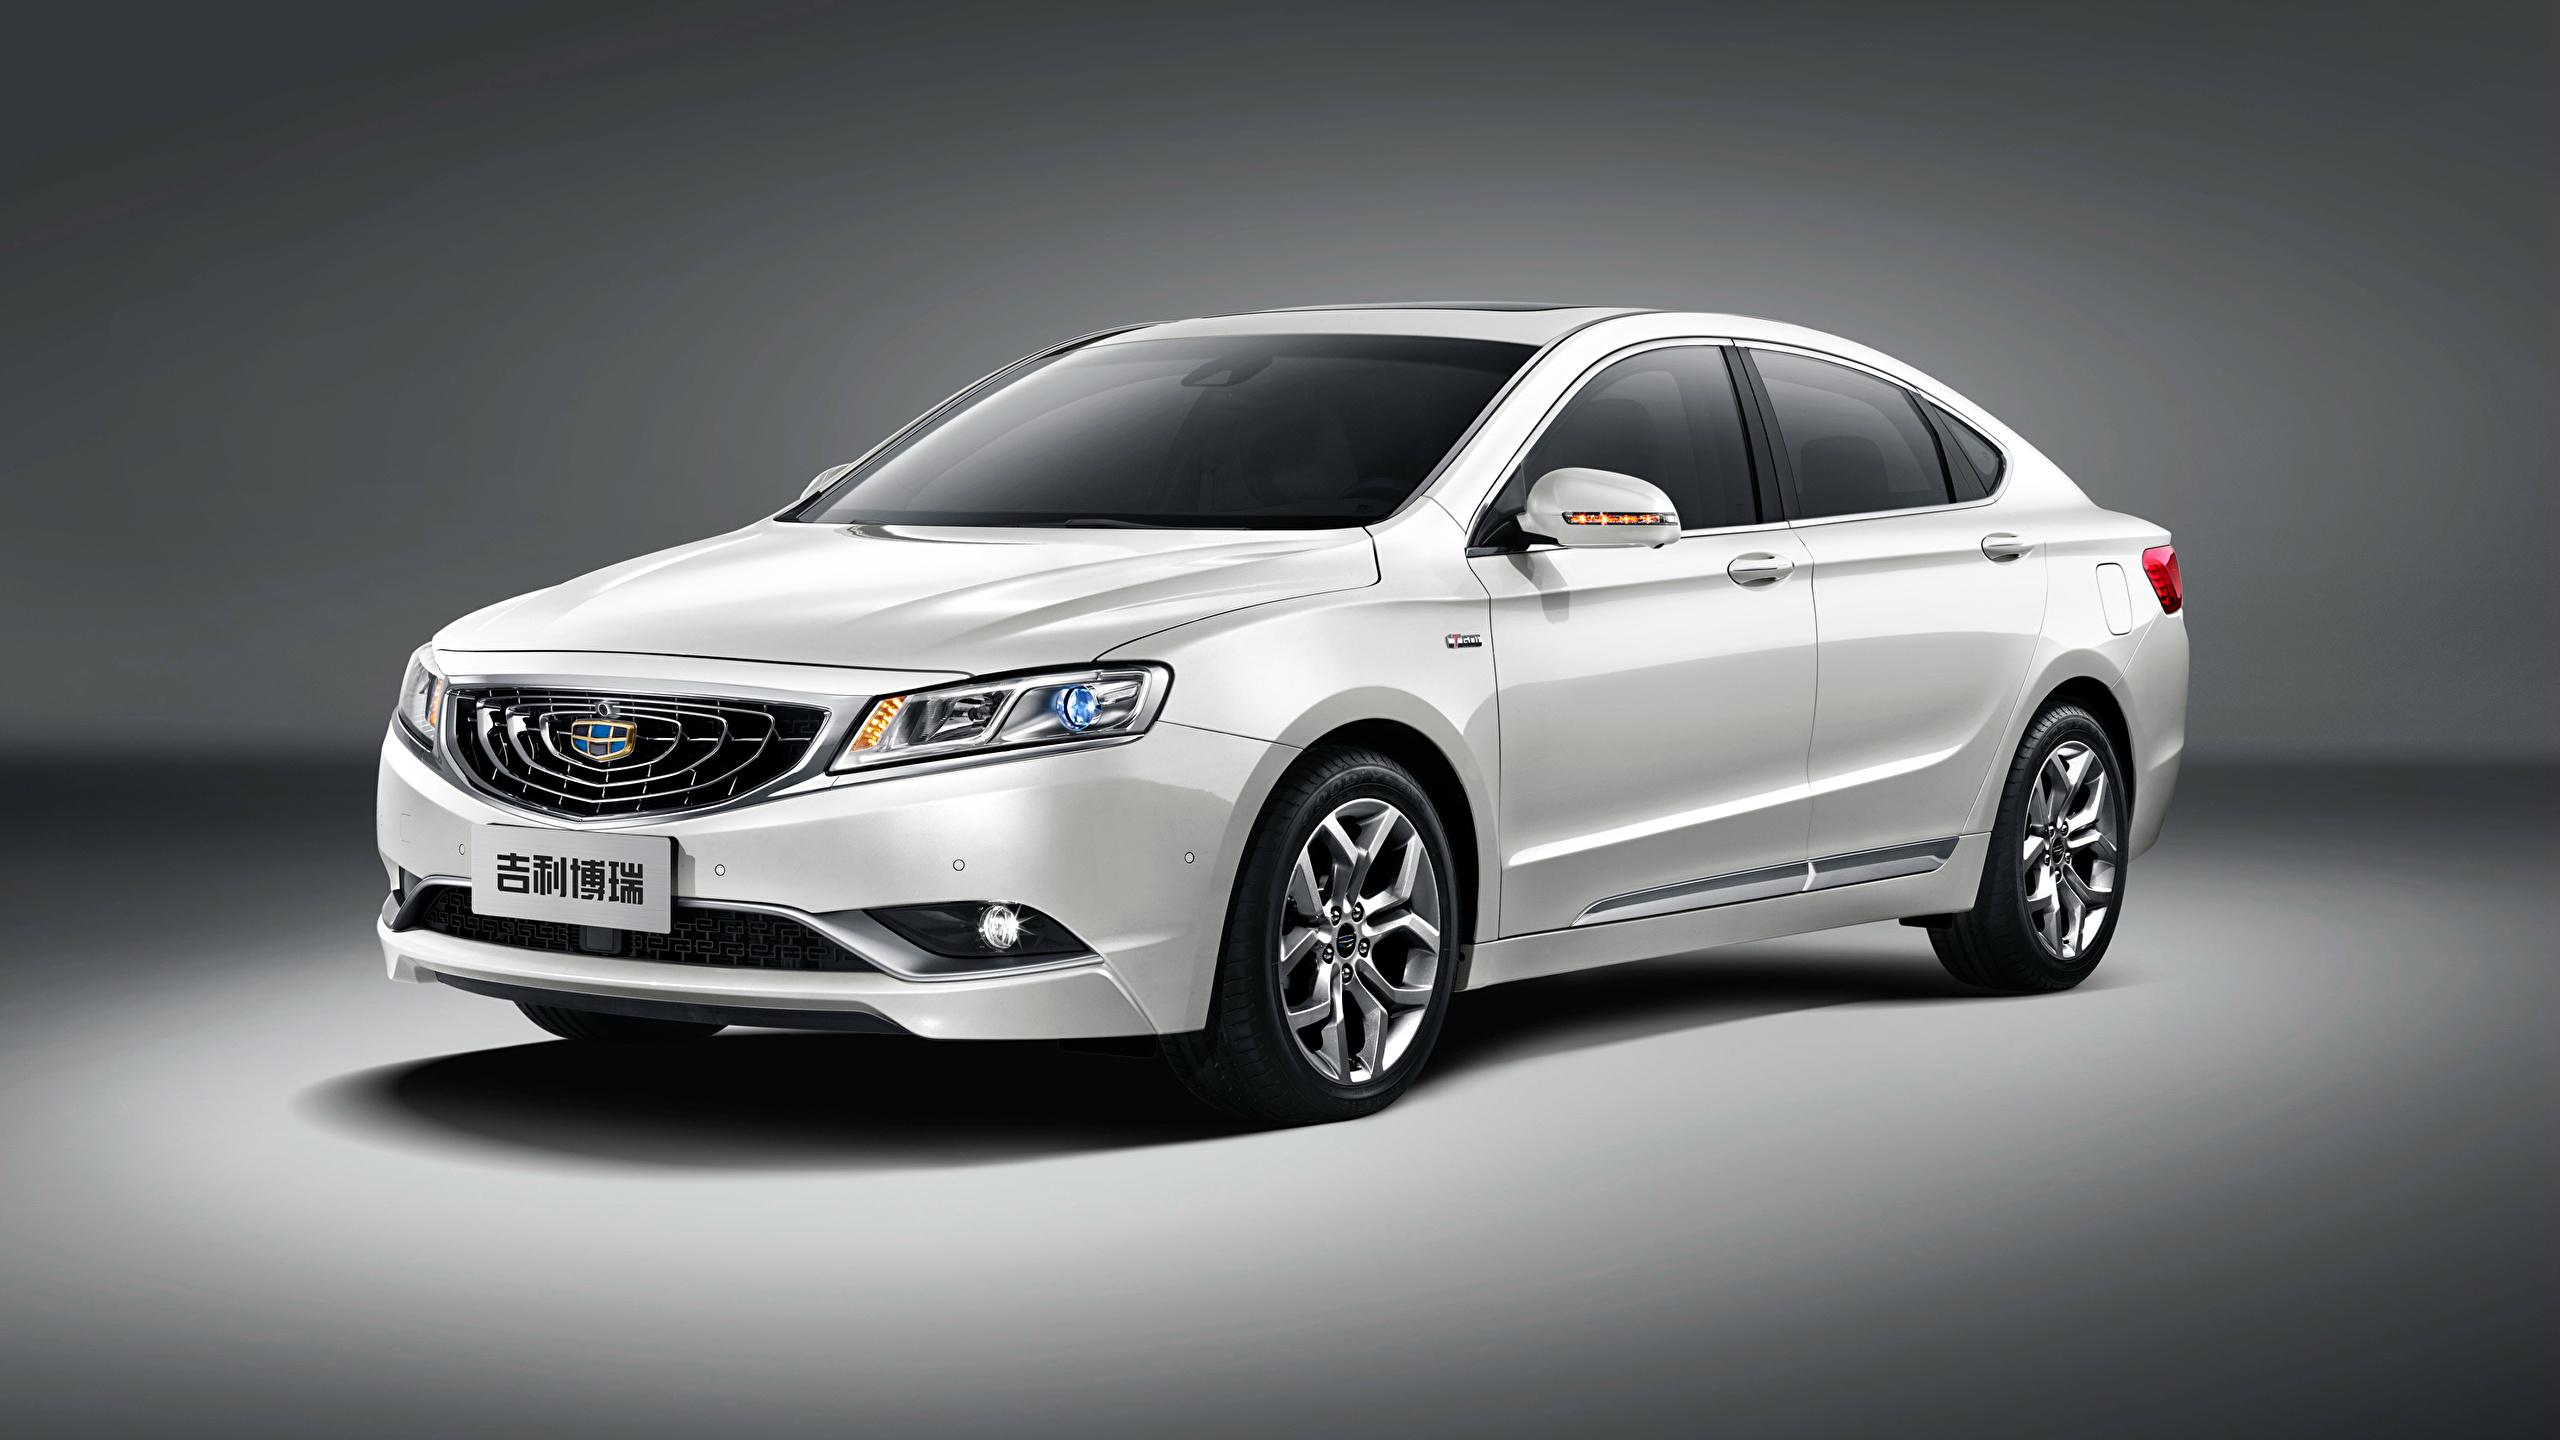 Pictures 2015 Geely GC9 White Cars 2560x1440